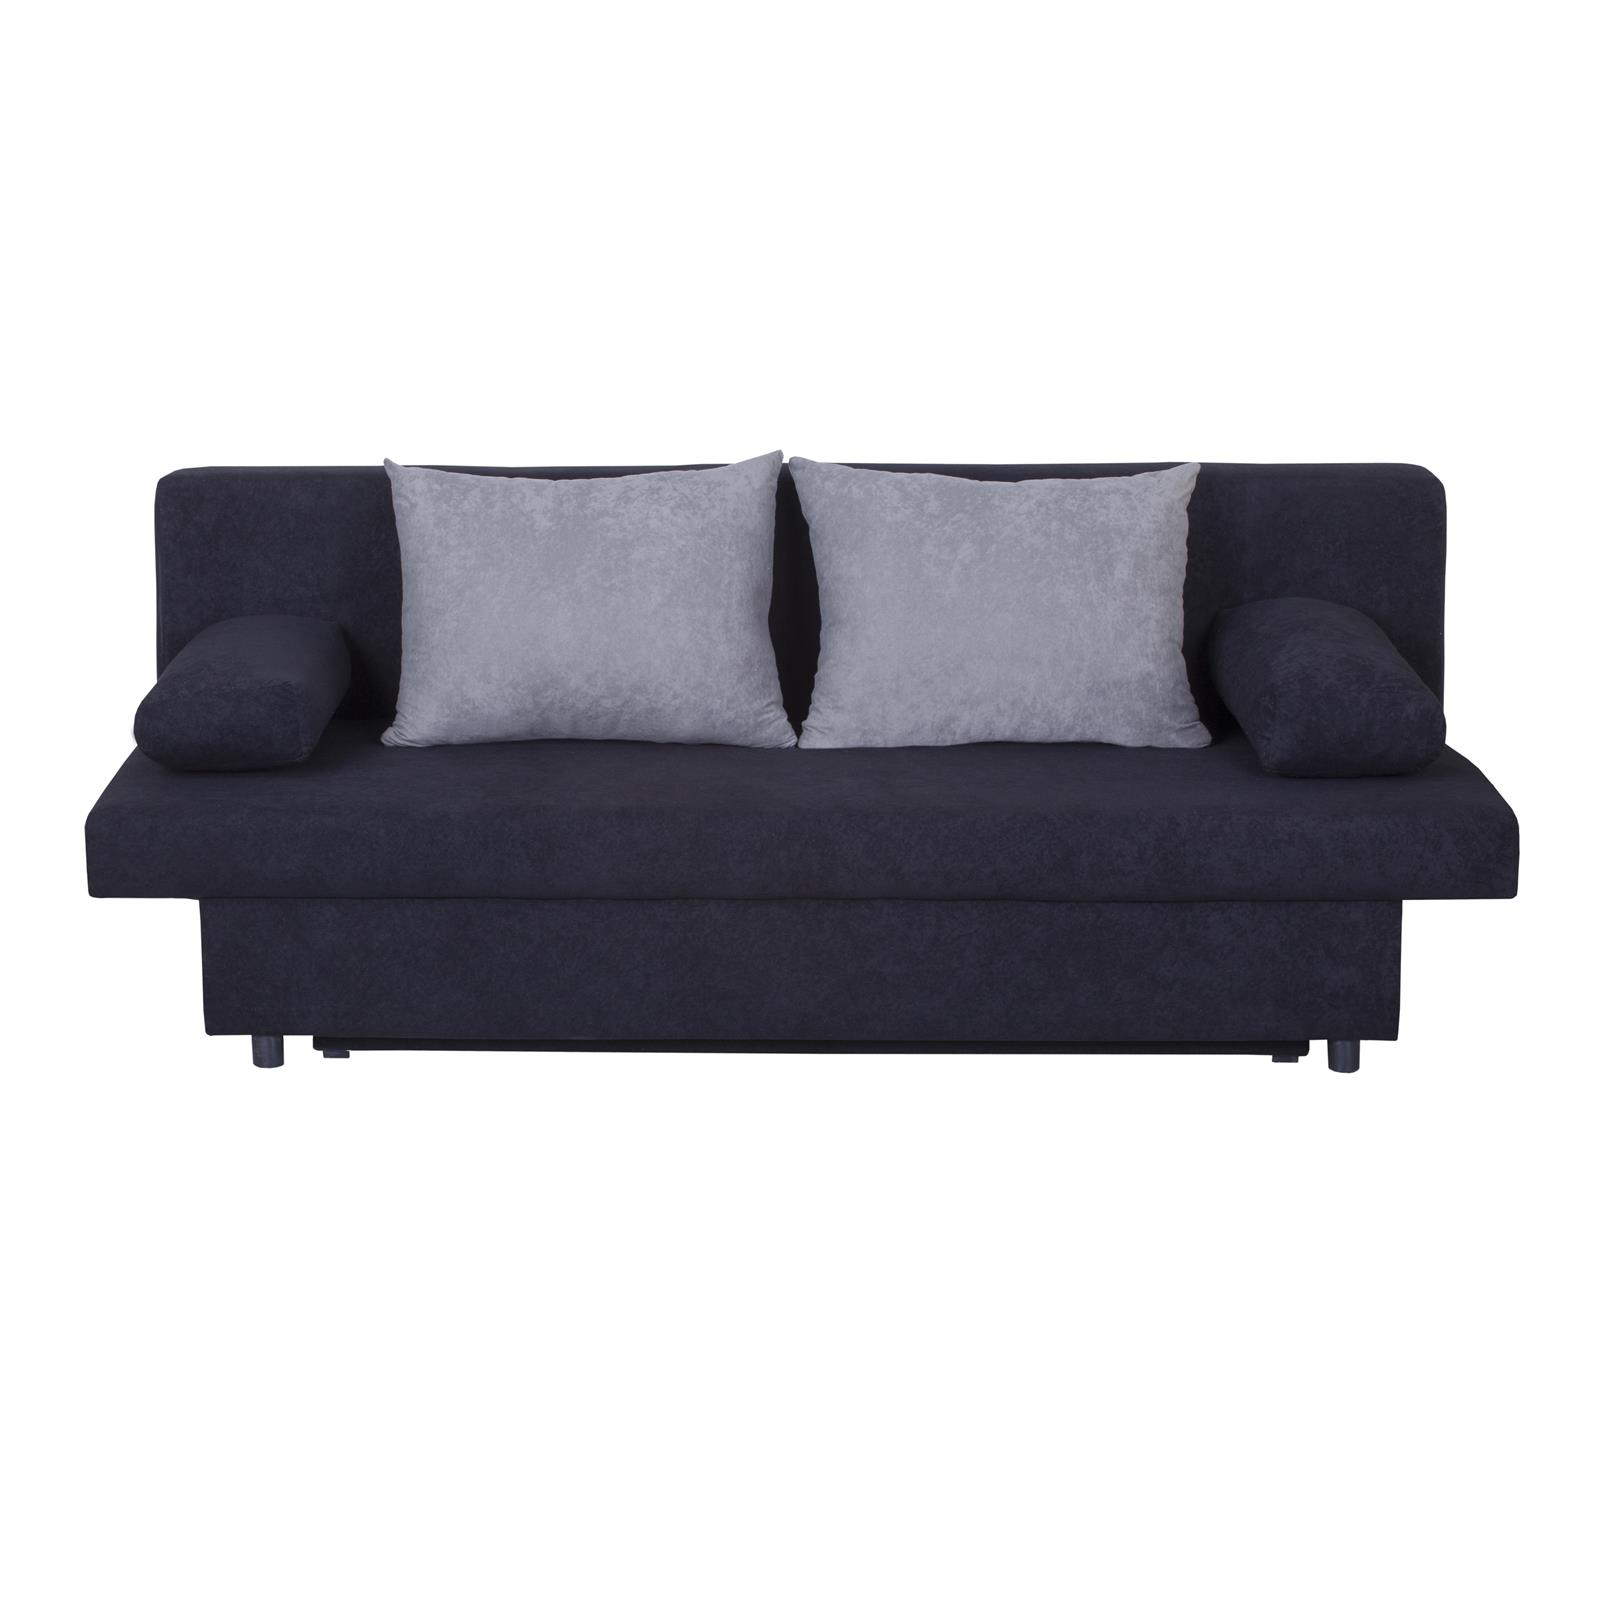 schlafsofa schlafcouch 3 sitzer sofa mit bettkasten in. Black Bedroom Furniture Sets. Home Design Ideas